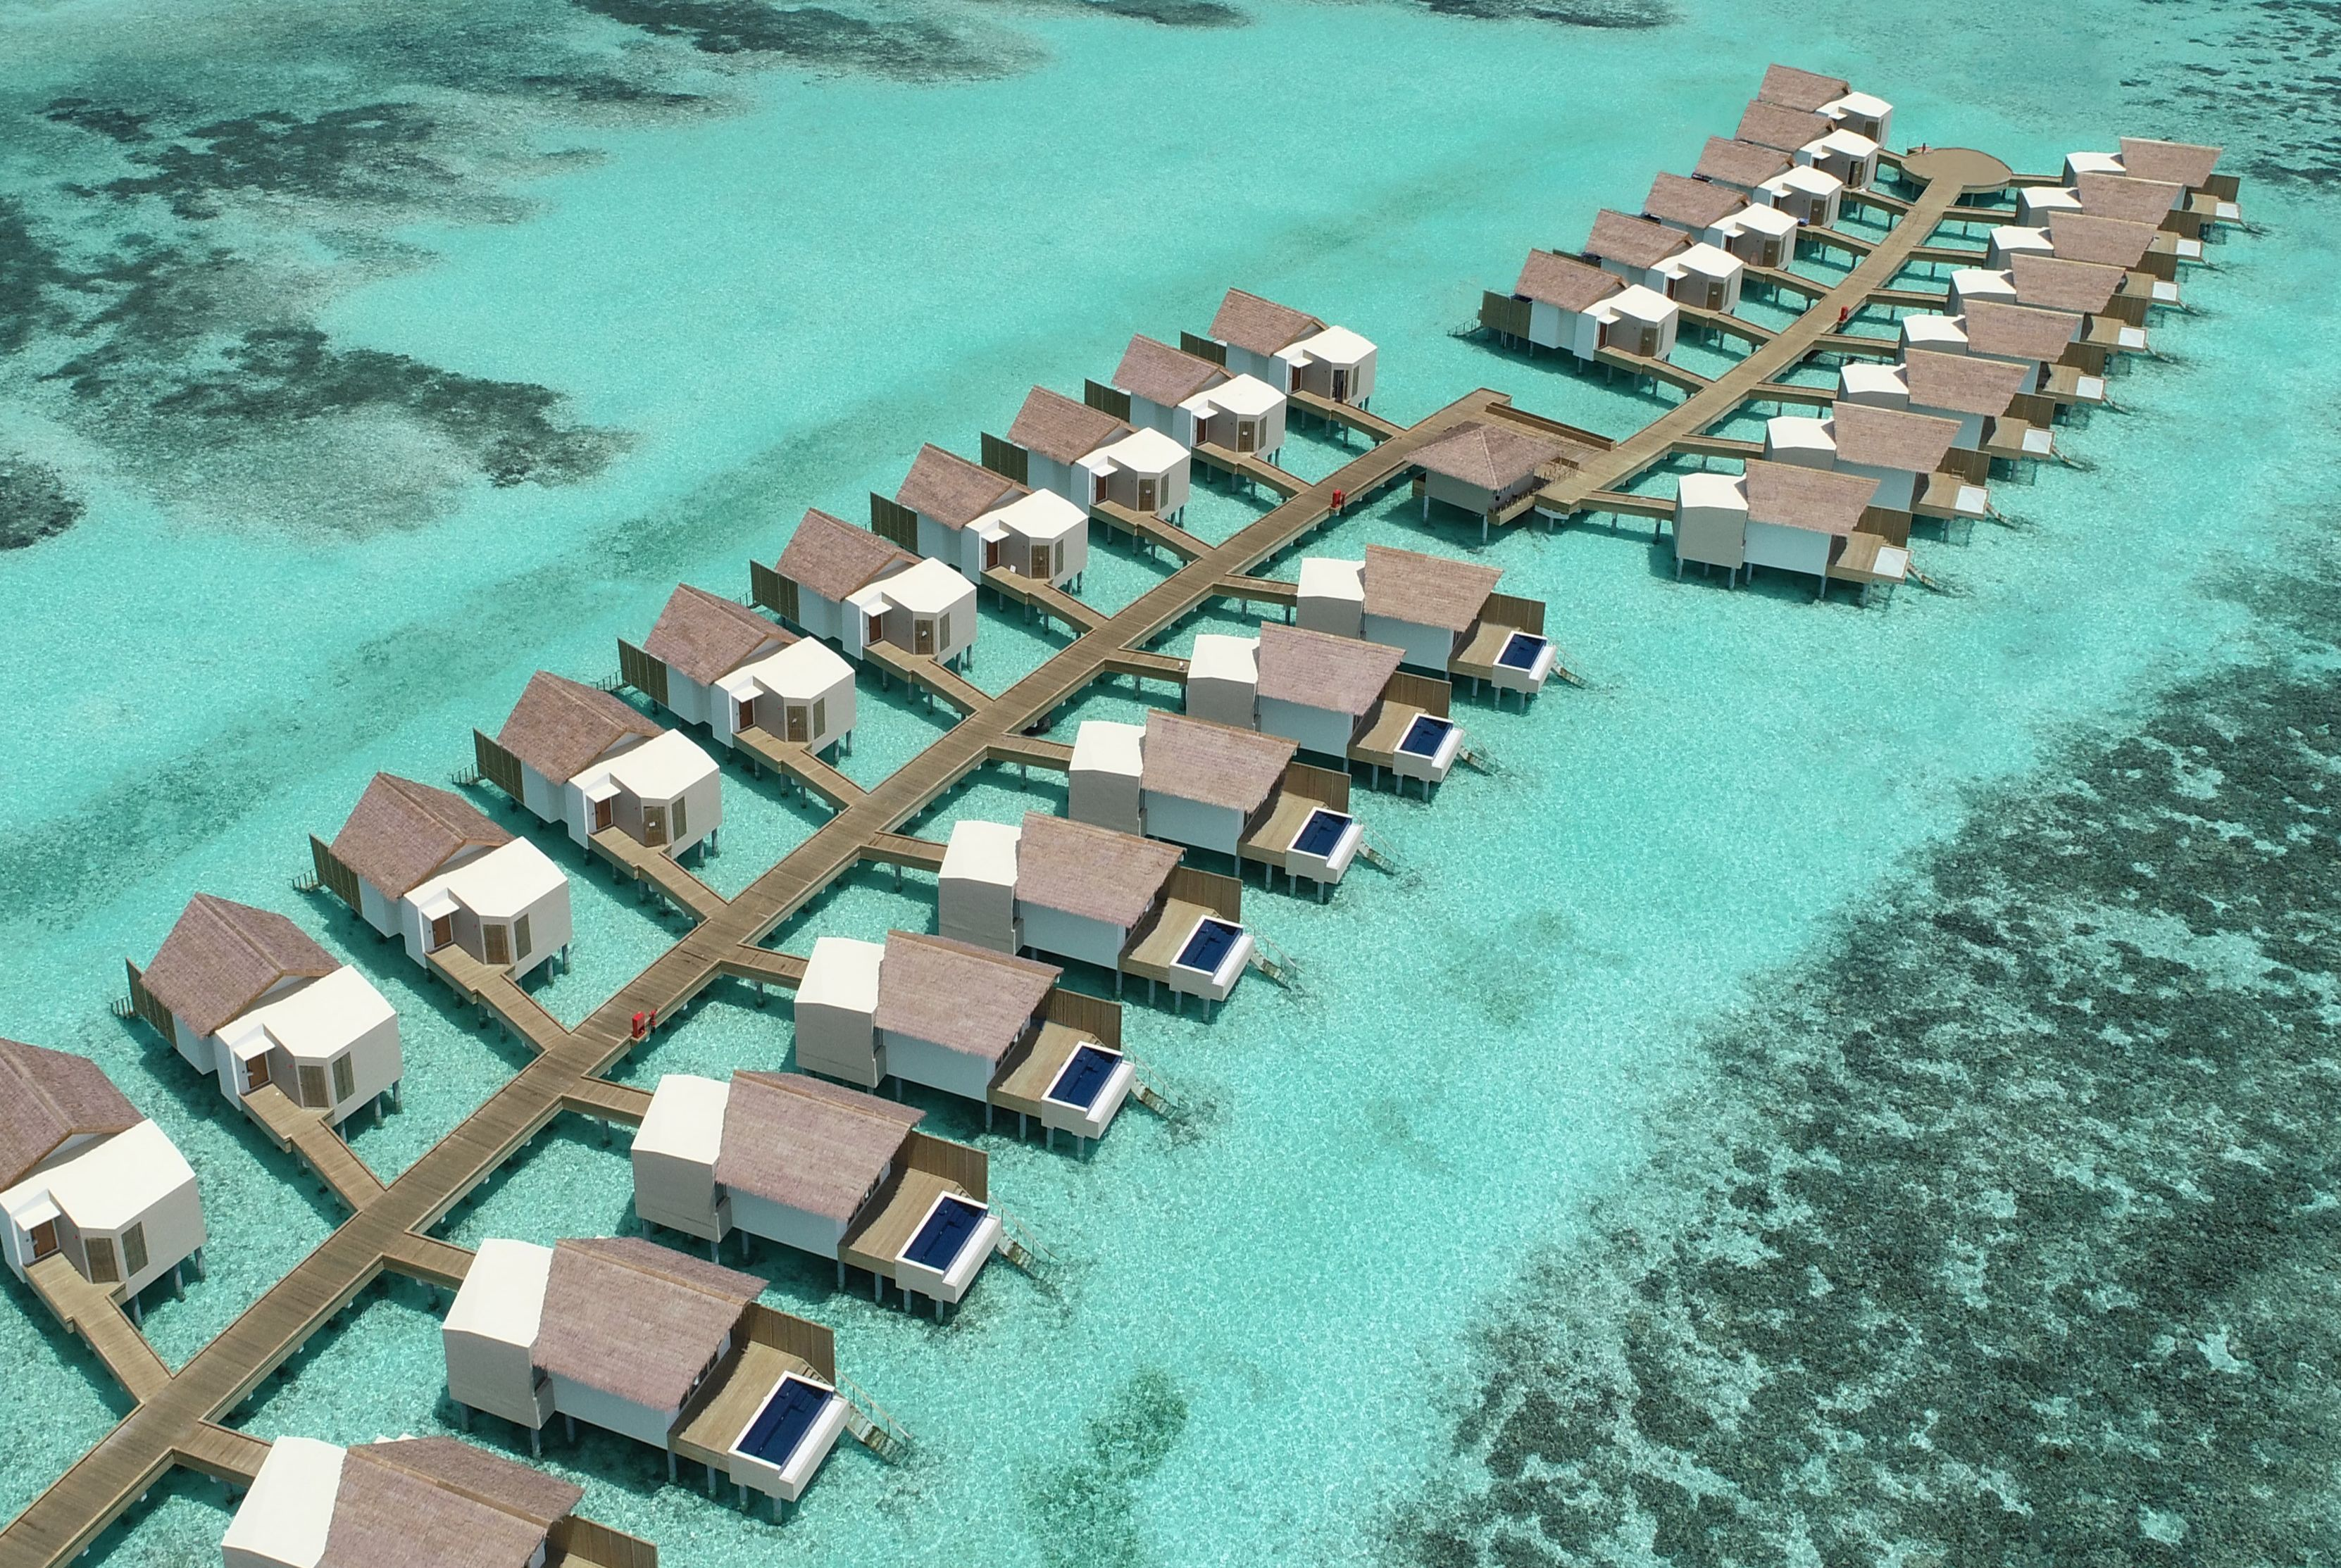 HARD ROCK HOTEL - The overwater villas and overwater pool villas at Hard Rock Hotel Maldives (Credit: Hard Rock Hotel Maldives)